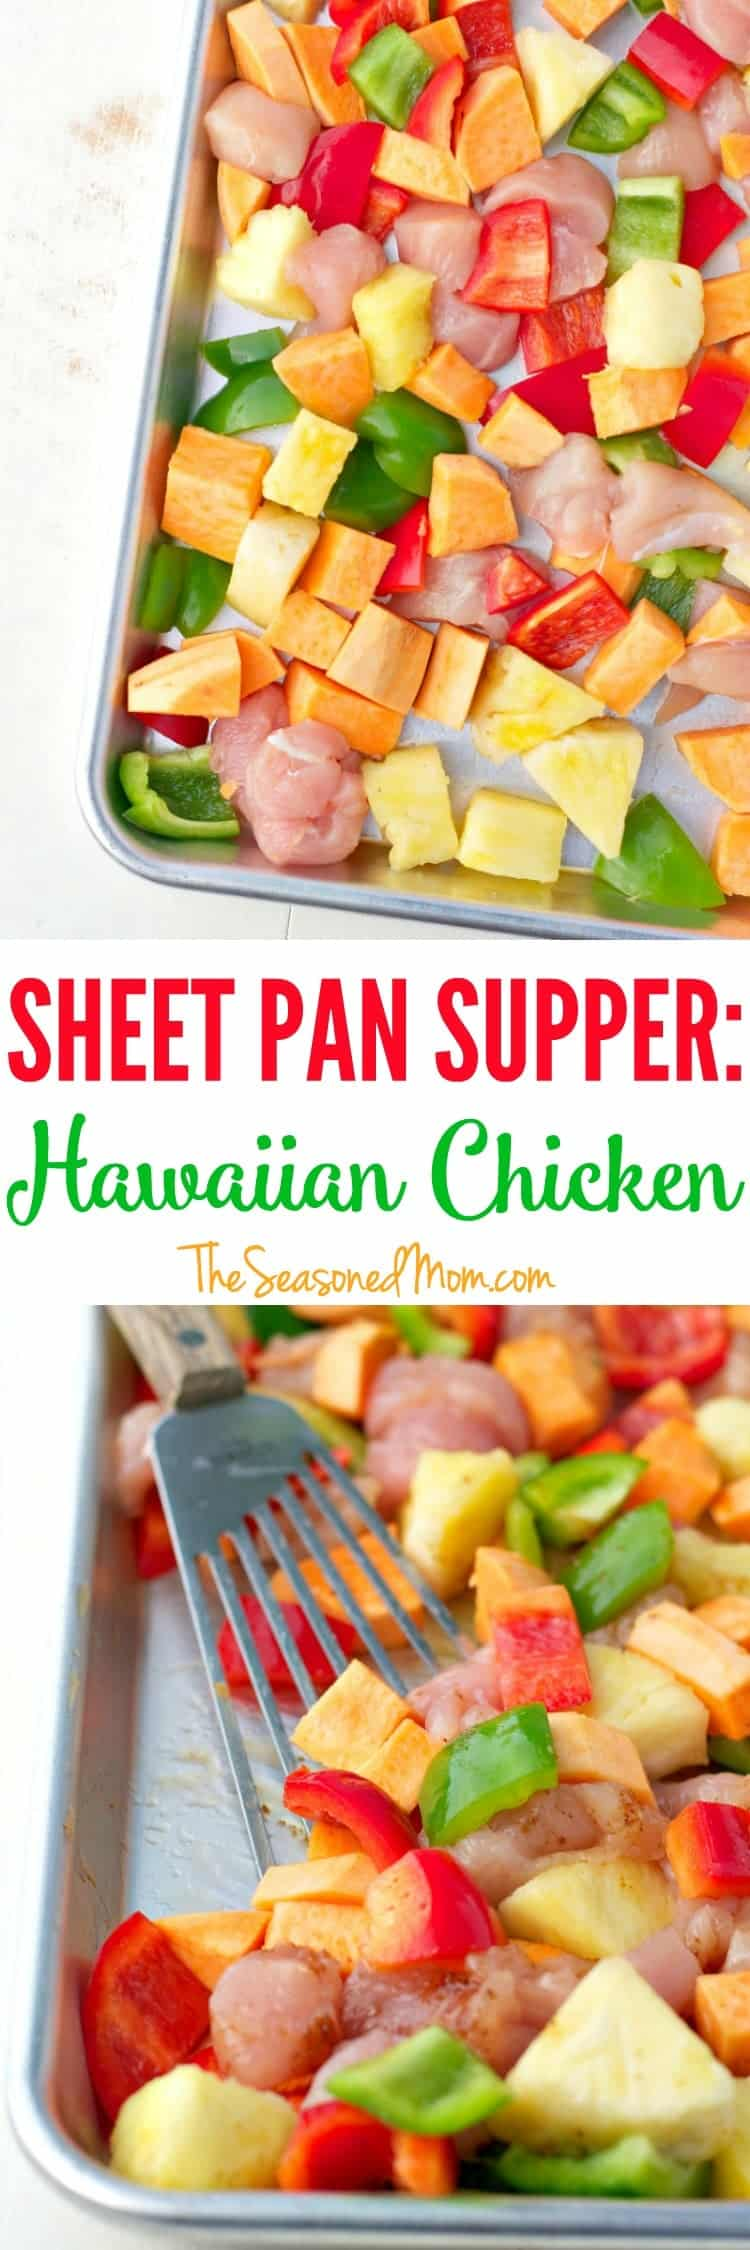 Sheet Pan Supper: Hawaiian Chicken with Pineapple, Sweet Potatoes, and Peppers!